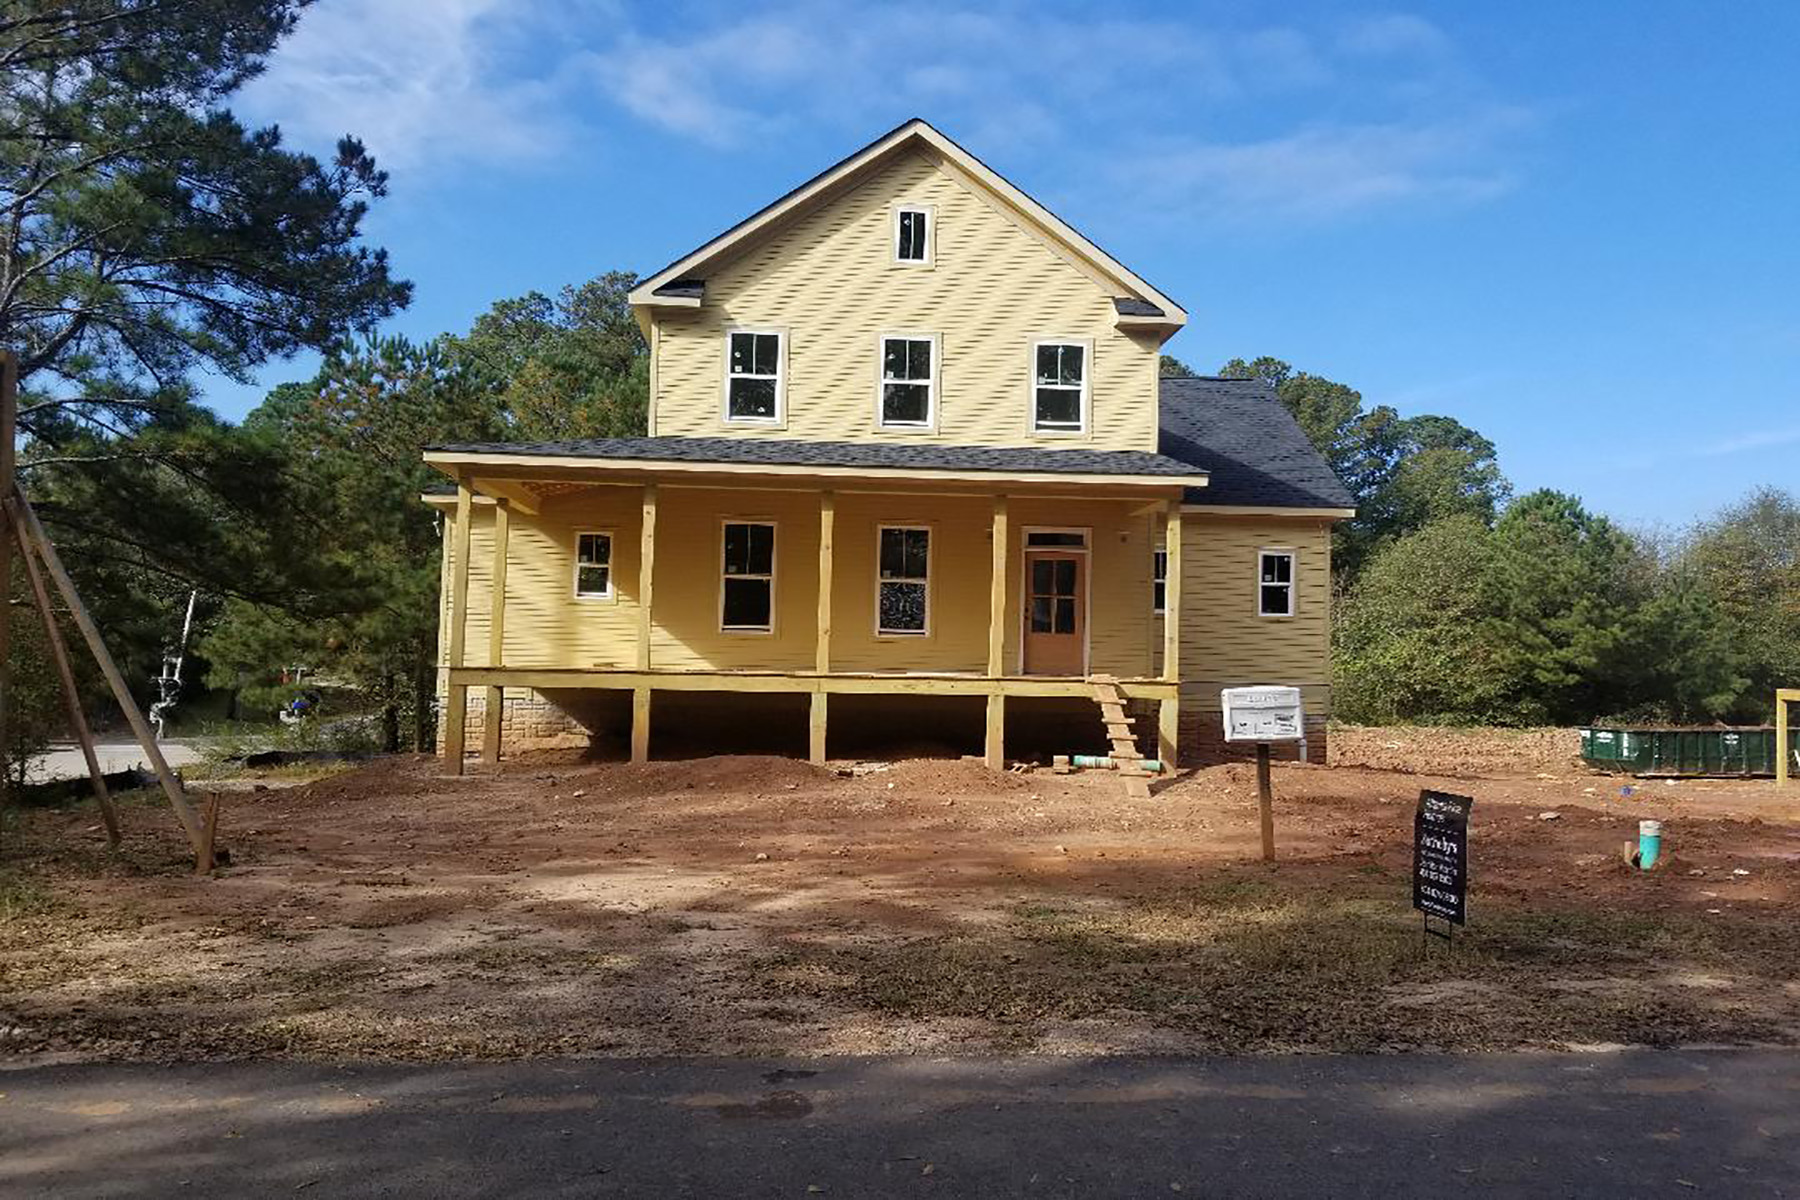 一戸建て のために 売買 アット Charming, New Construction Farmhouse in Historic Downtown Senoia 0 Horseshoe Bend Senoia, ジョージア 30276 アメリカ合衆国